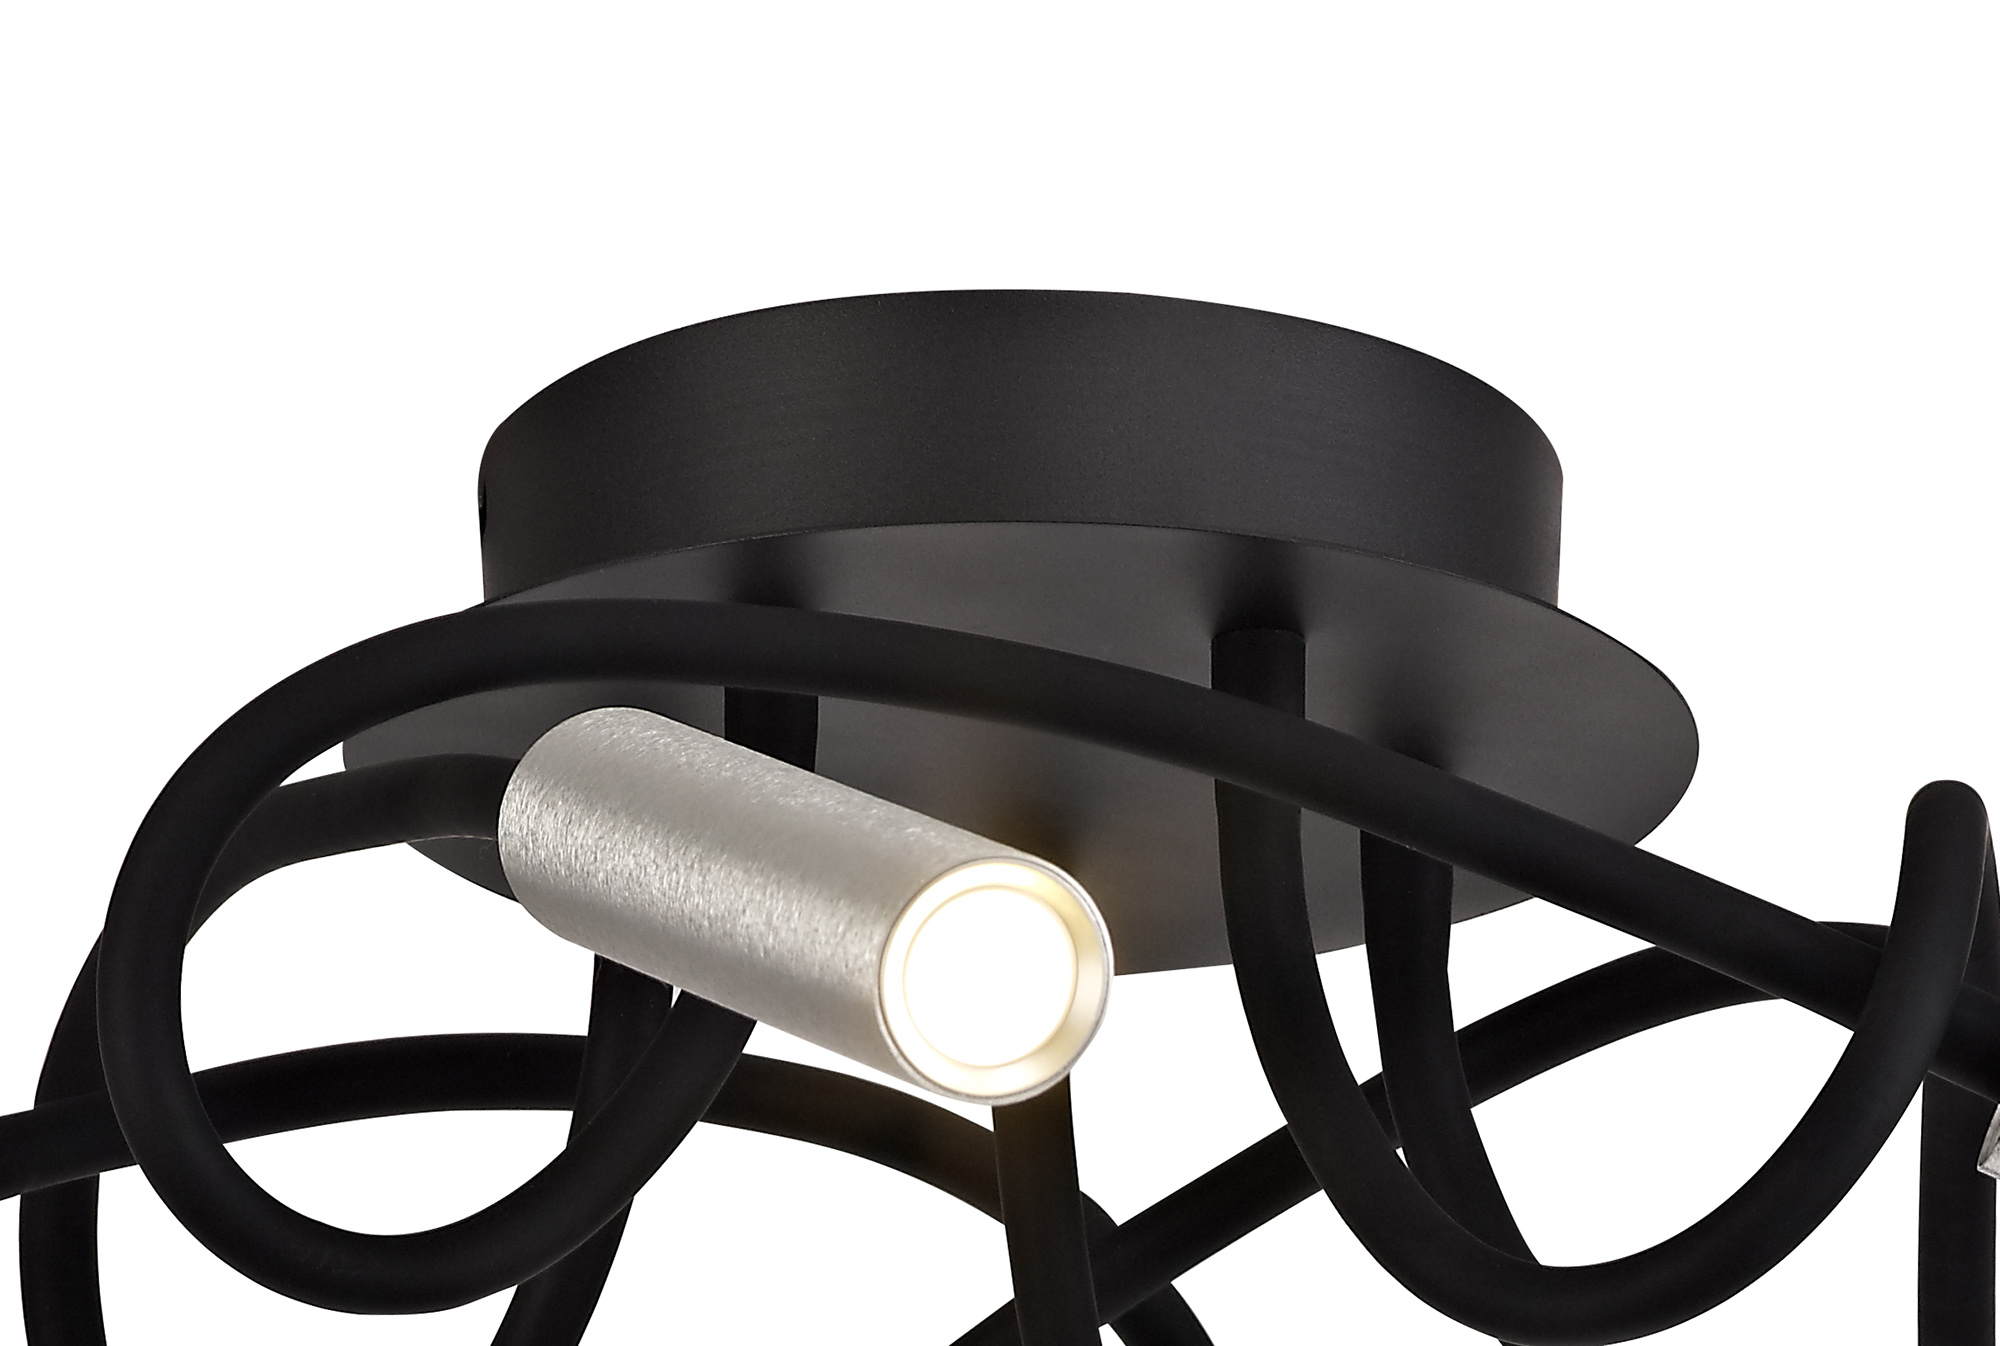 Ceiling, 5 Light Adjustable Arms, 5 x 5W LED Dimmable, 3000K, 1550lm, 3yrs Warranty